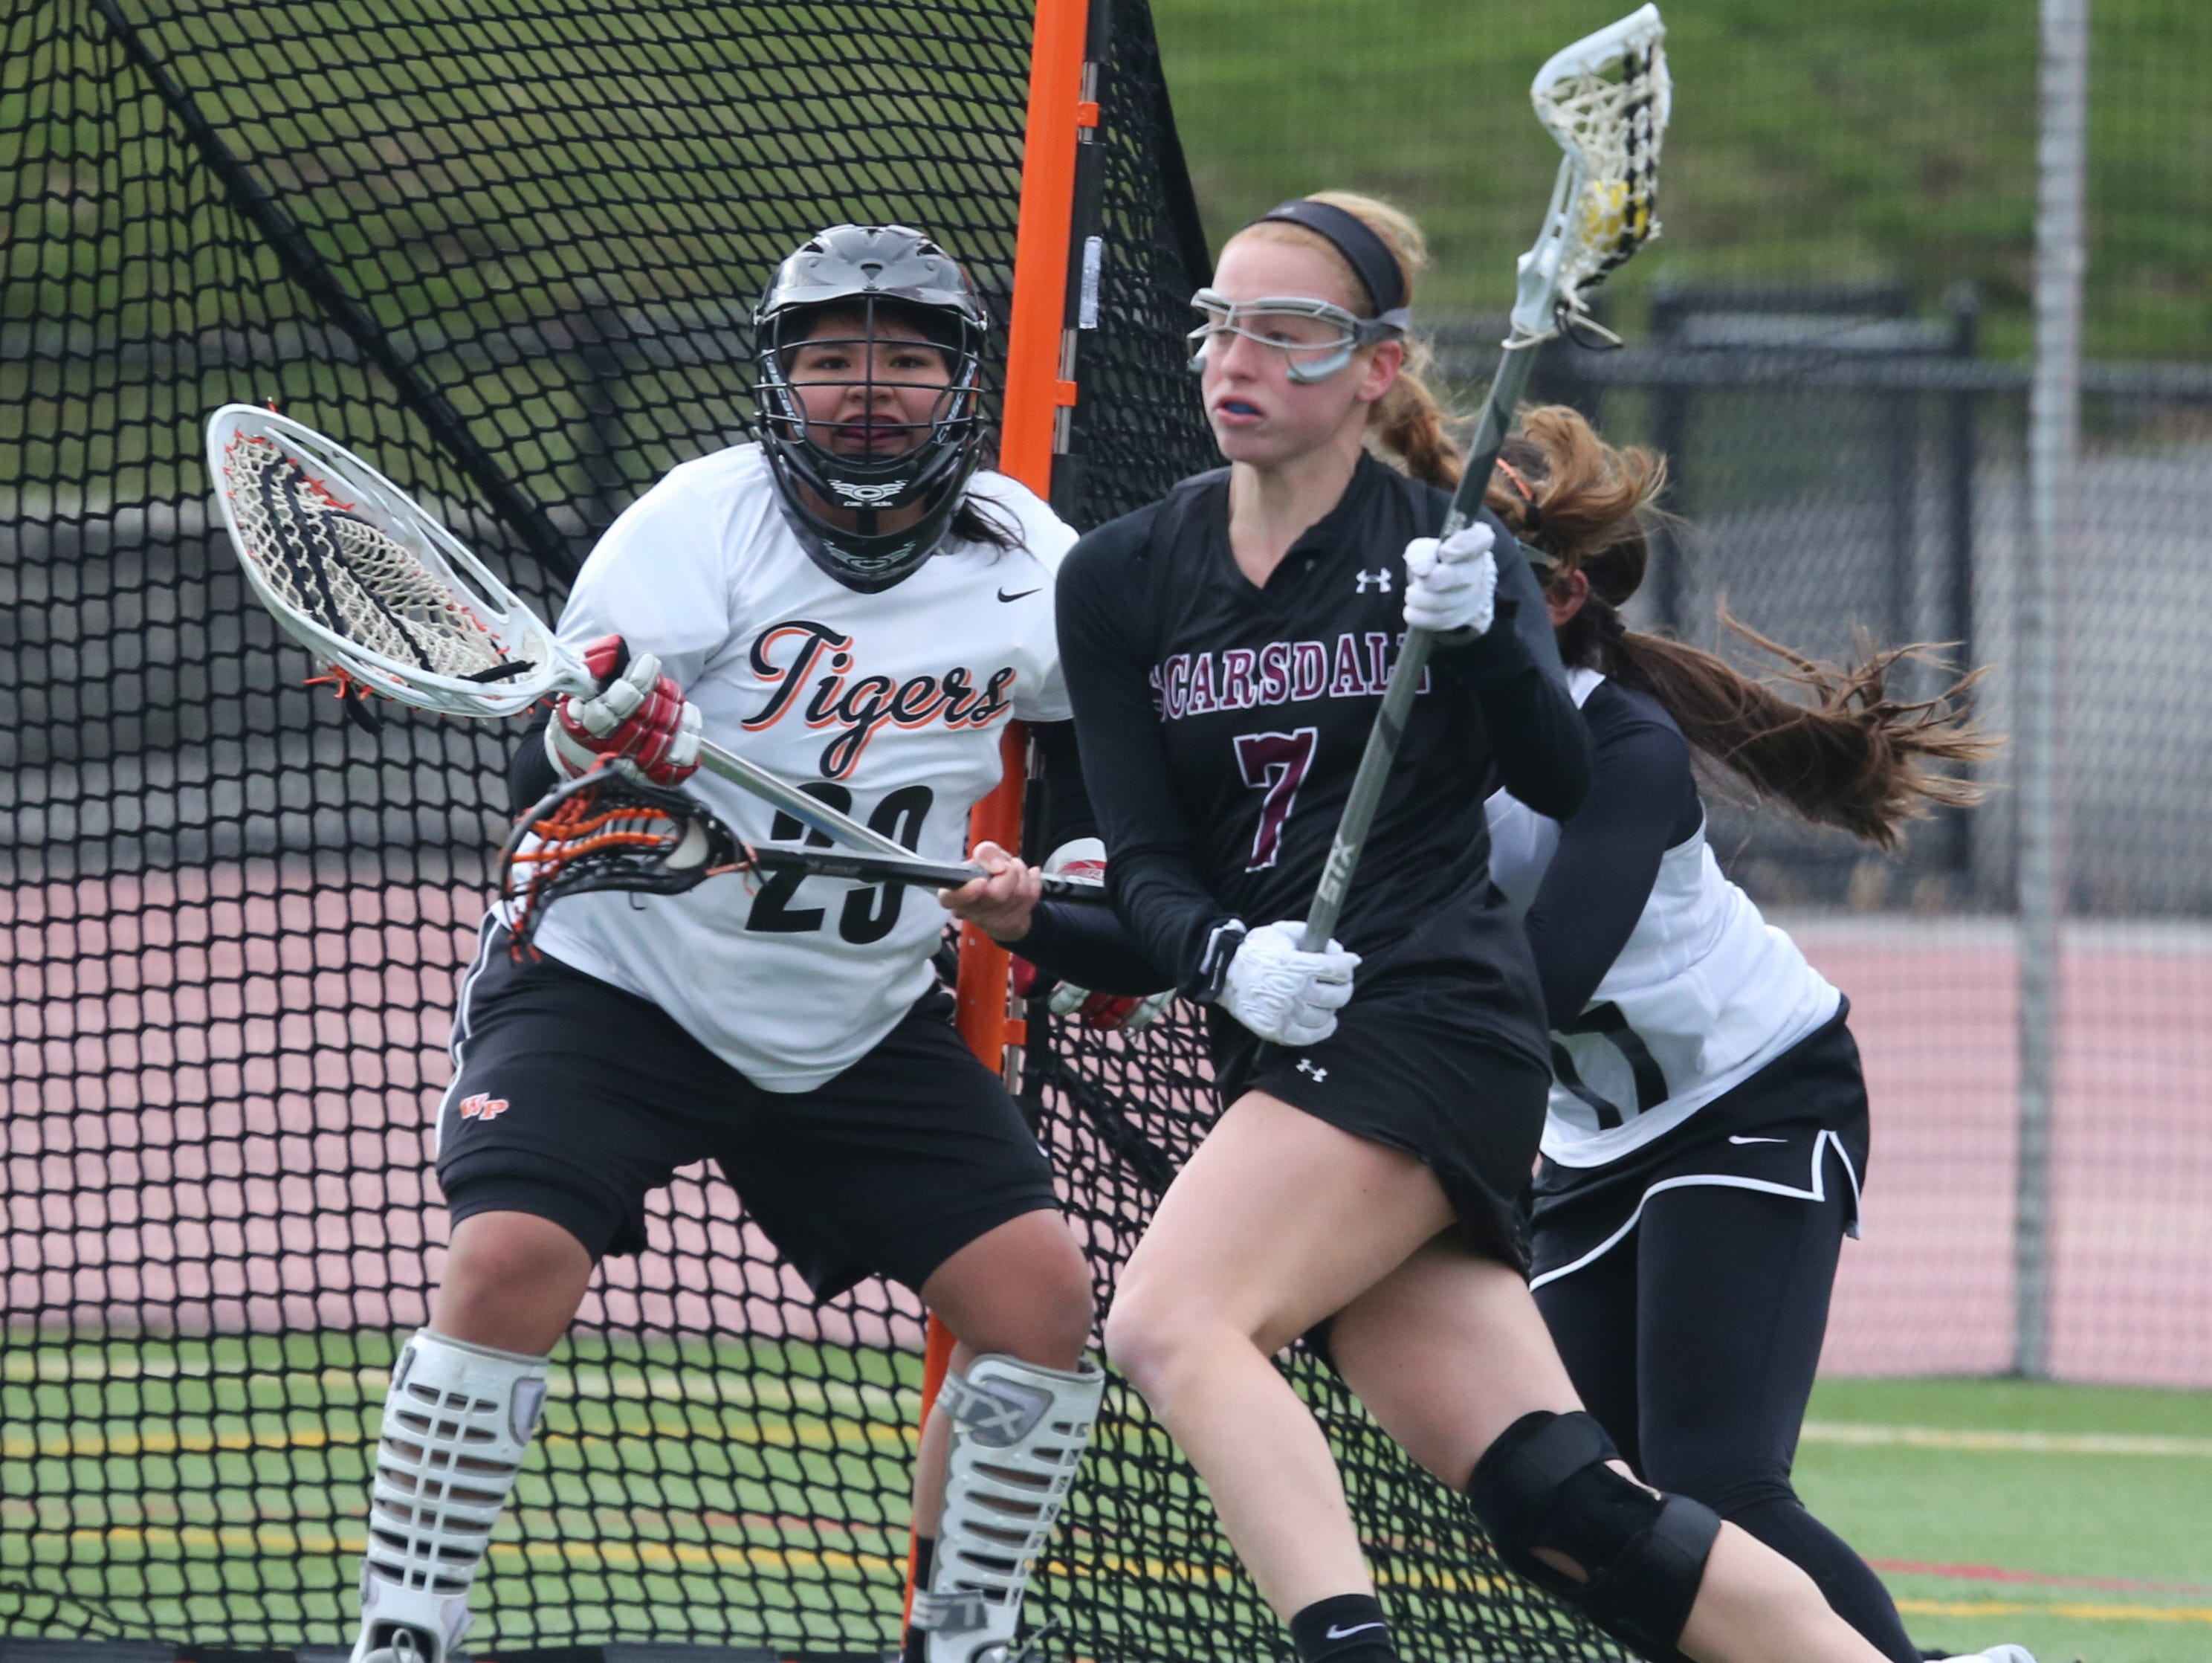 Scarsdale's Eliza Brosgol moves the ball in front of White Plains goalie Jennifer Ortega-Salazar during their girls lacrosse game at White Plains High School, April 6, 2016.